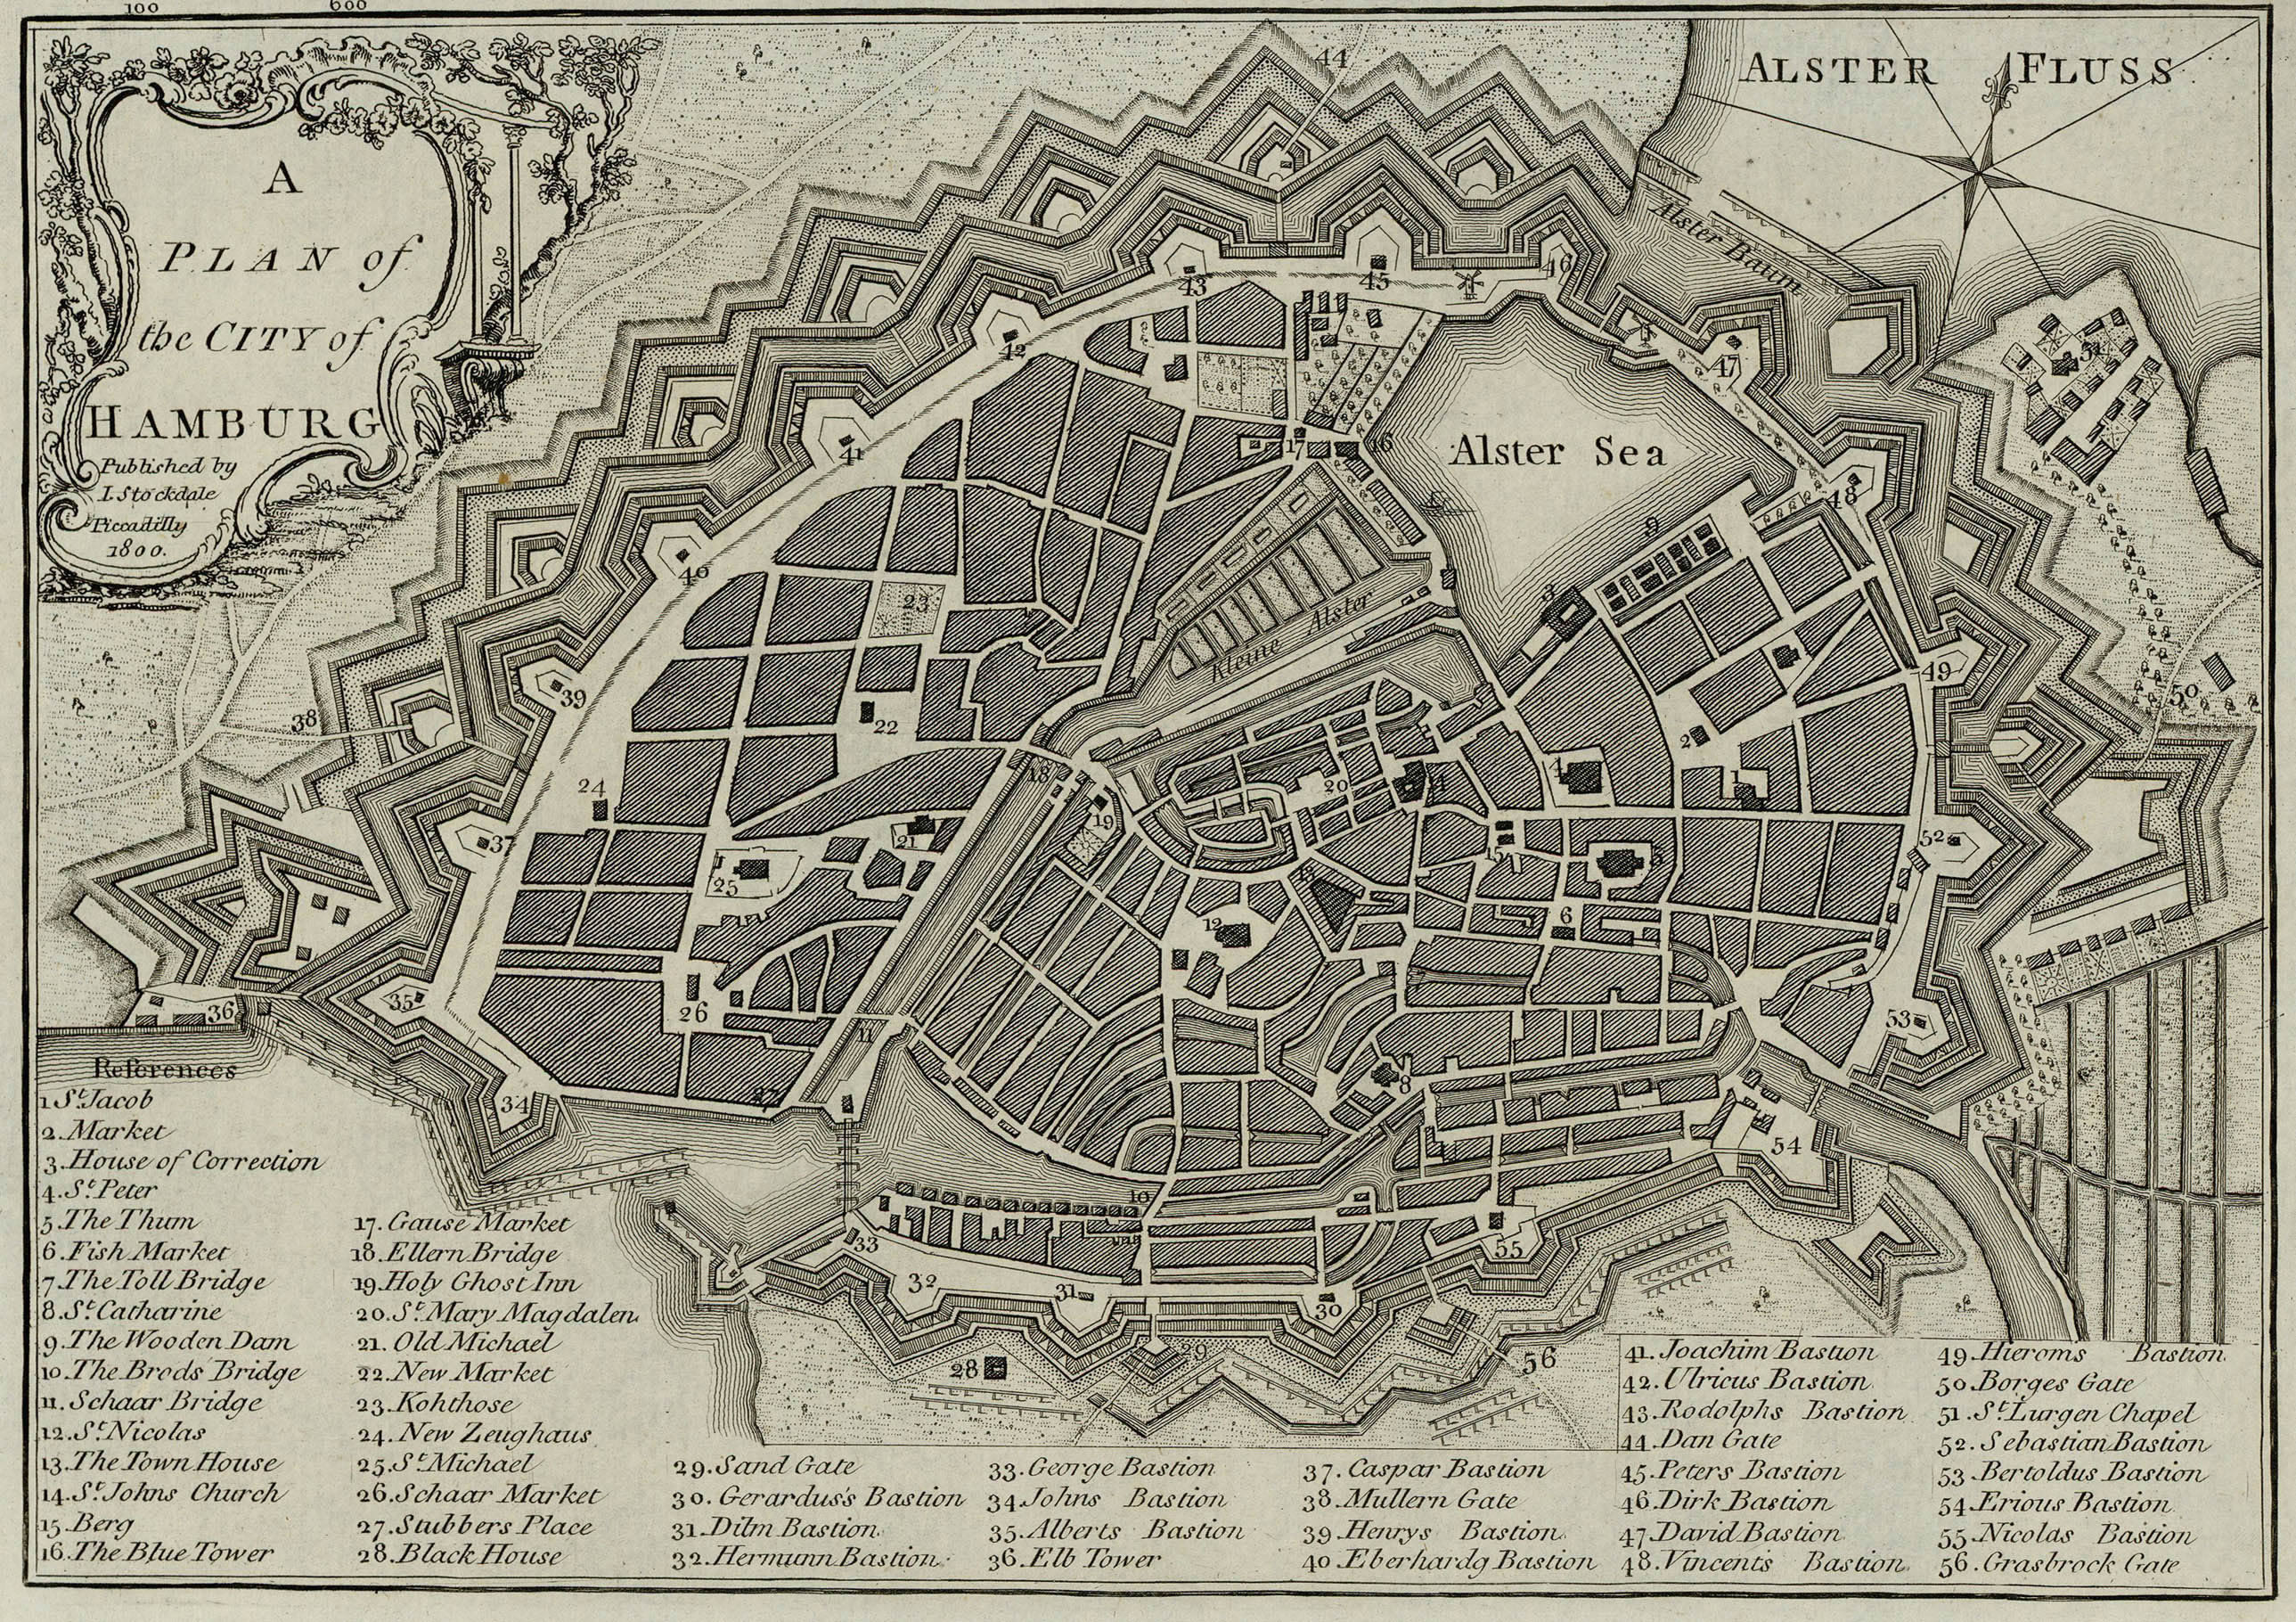 A plan of the City of Hamburg 1800